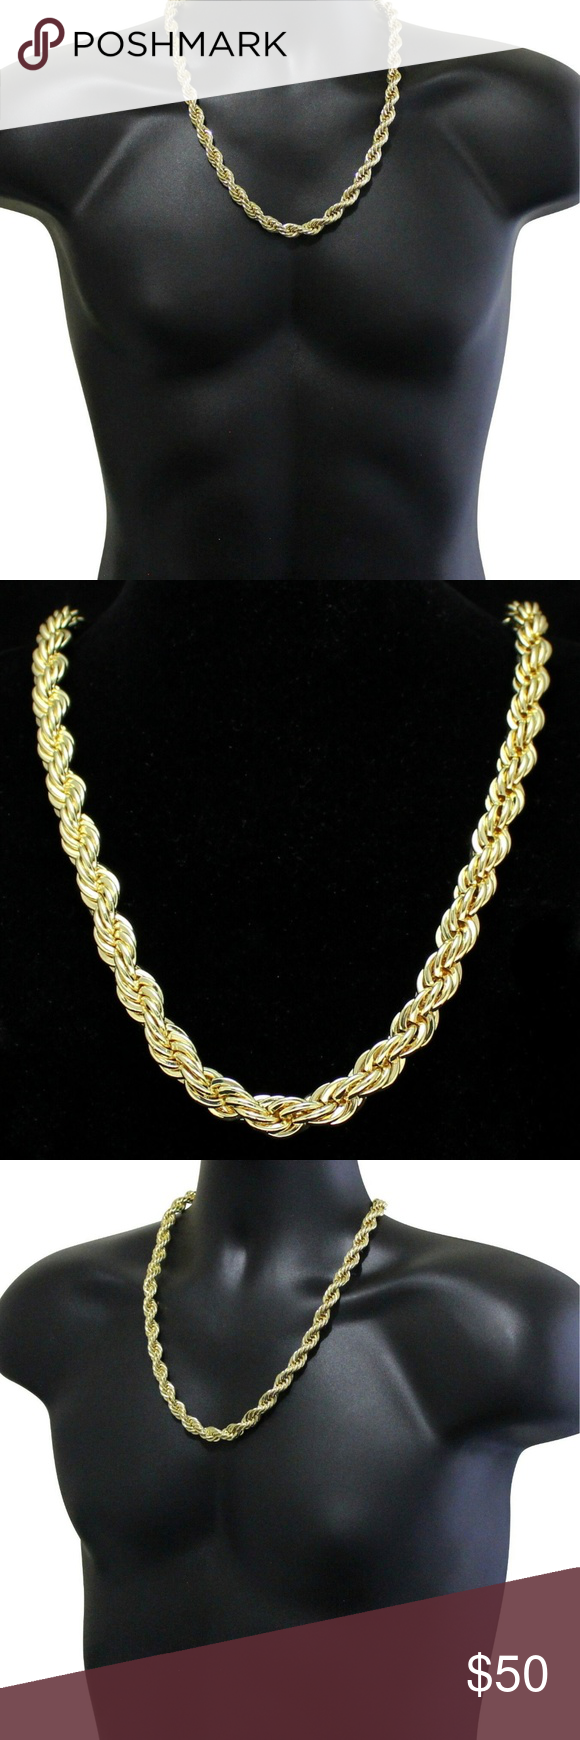 Mens 24 New 14k Gold Plated 10m Thick Rope Chain 14k Gold Plated Solid Necklace Chains For Men